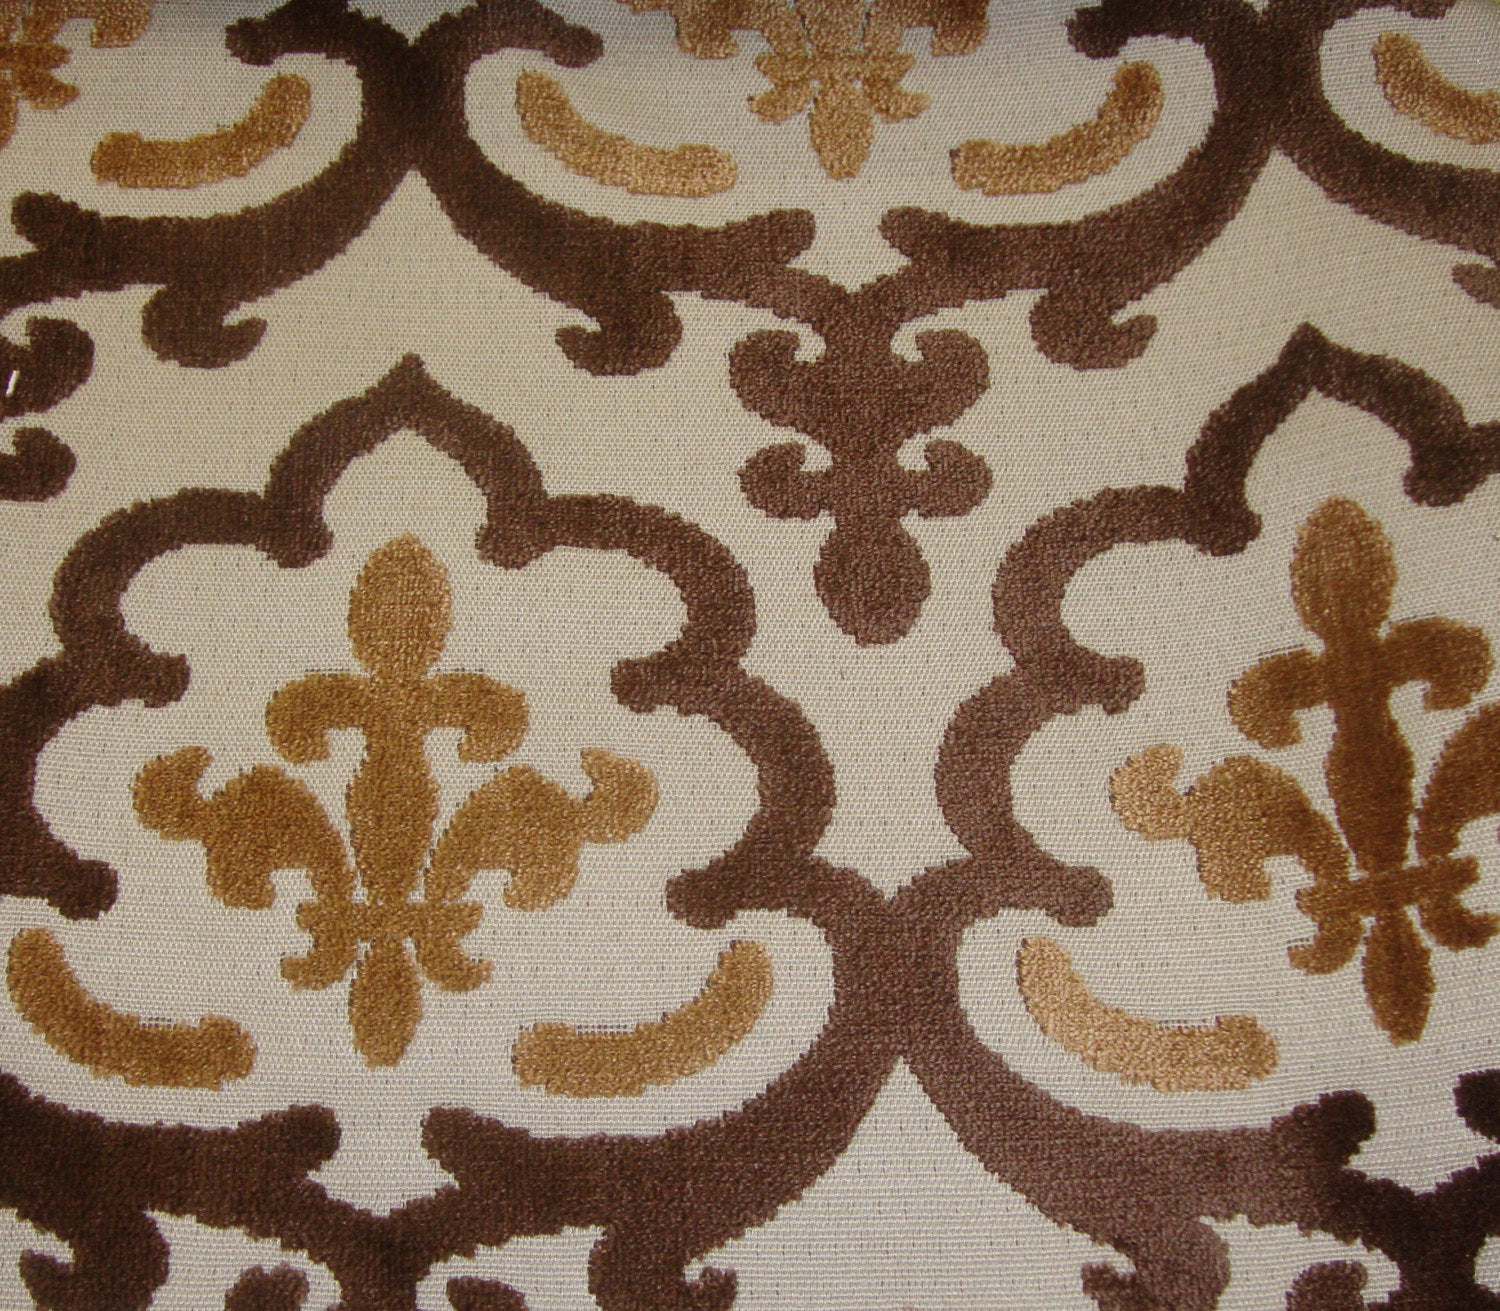 bittersweet-damask-embossed-raised-velvet-55-56-wide-upholstery-fabric-by-the-yard